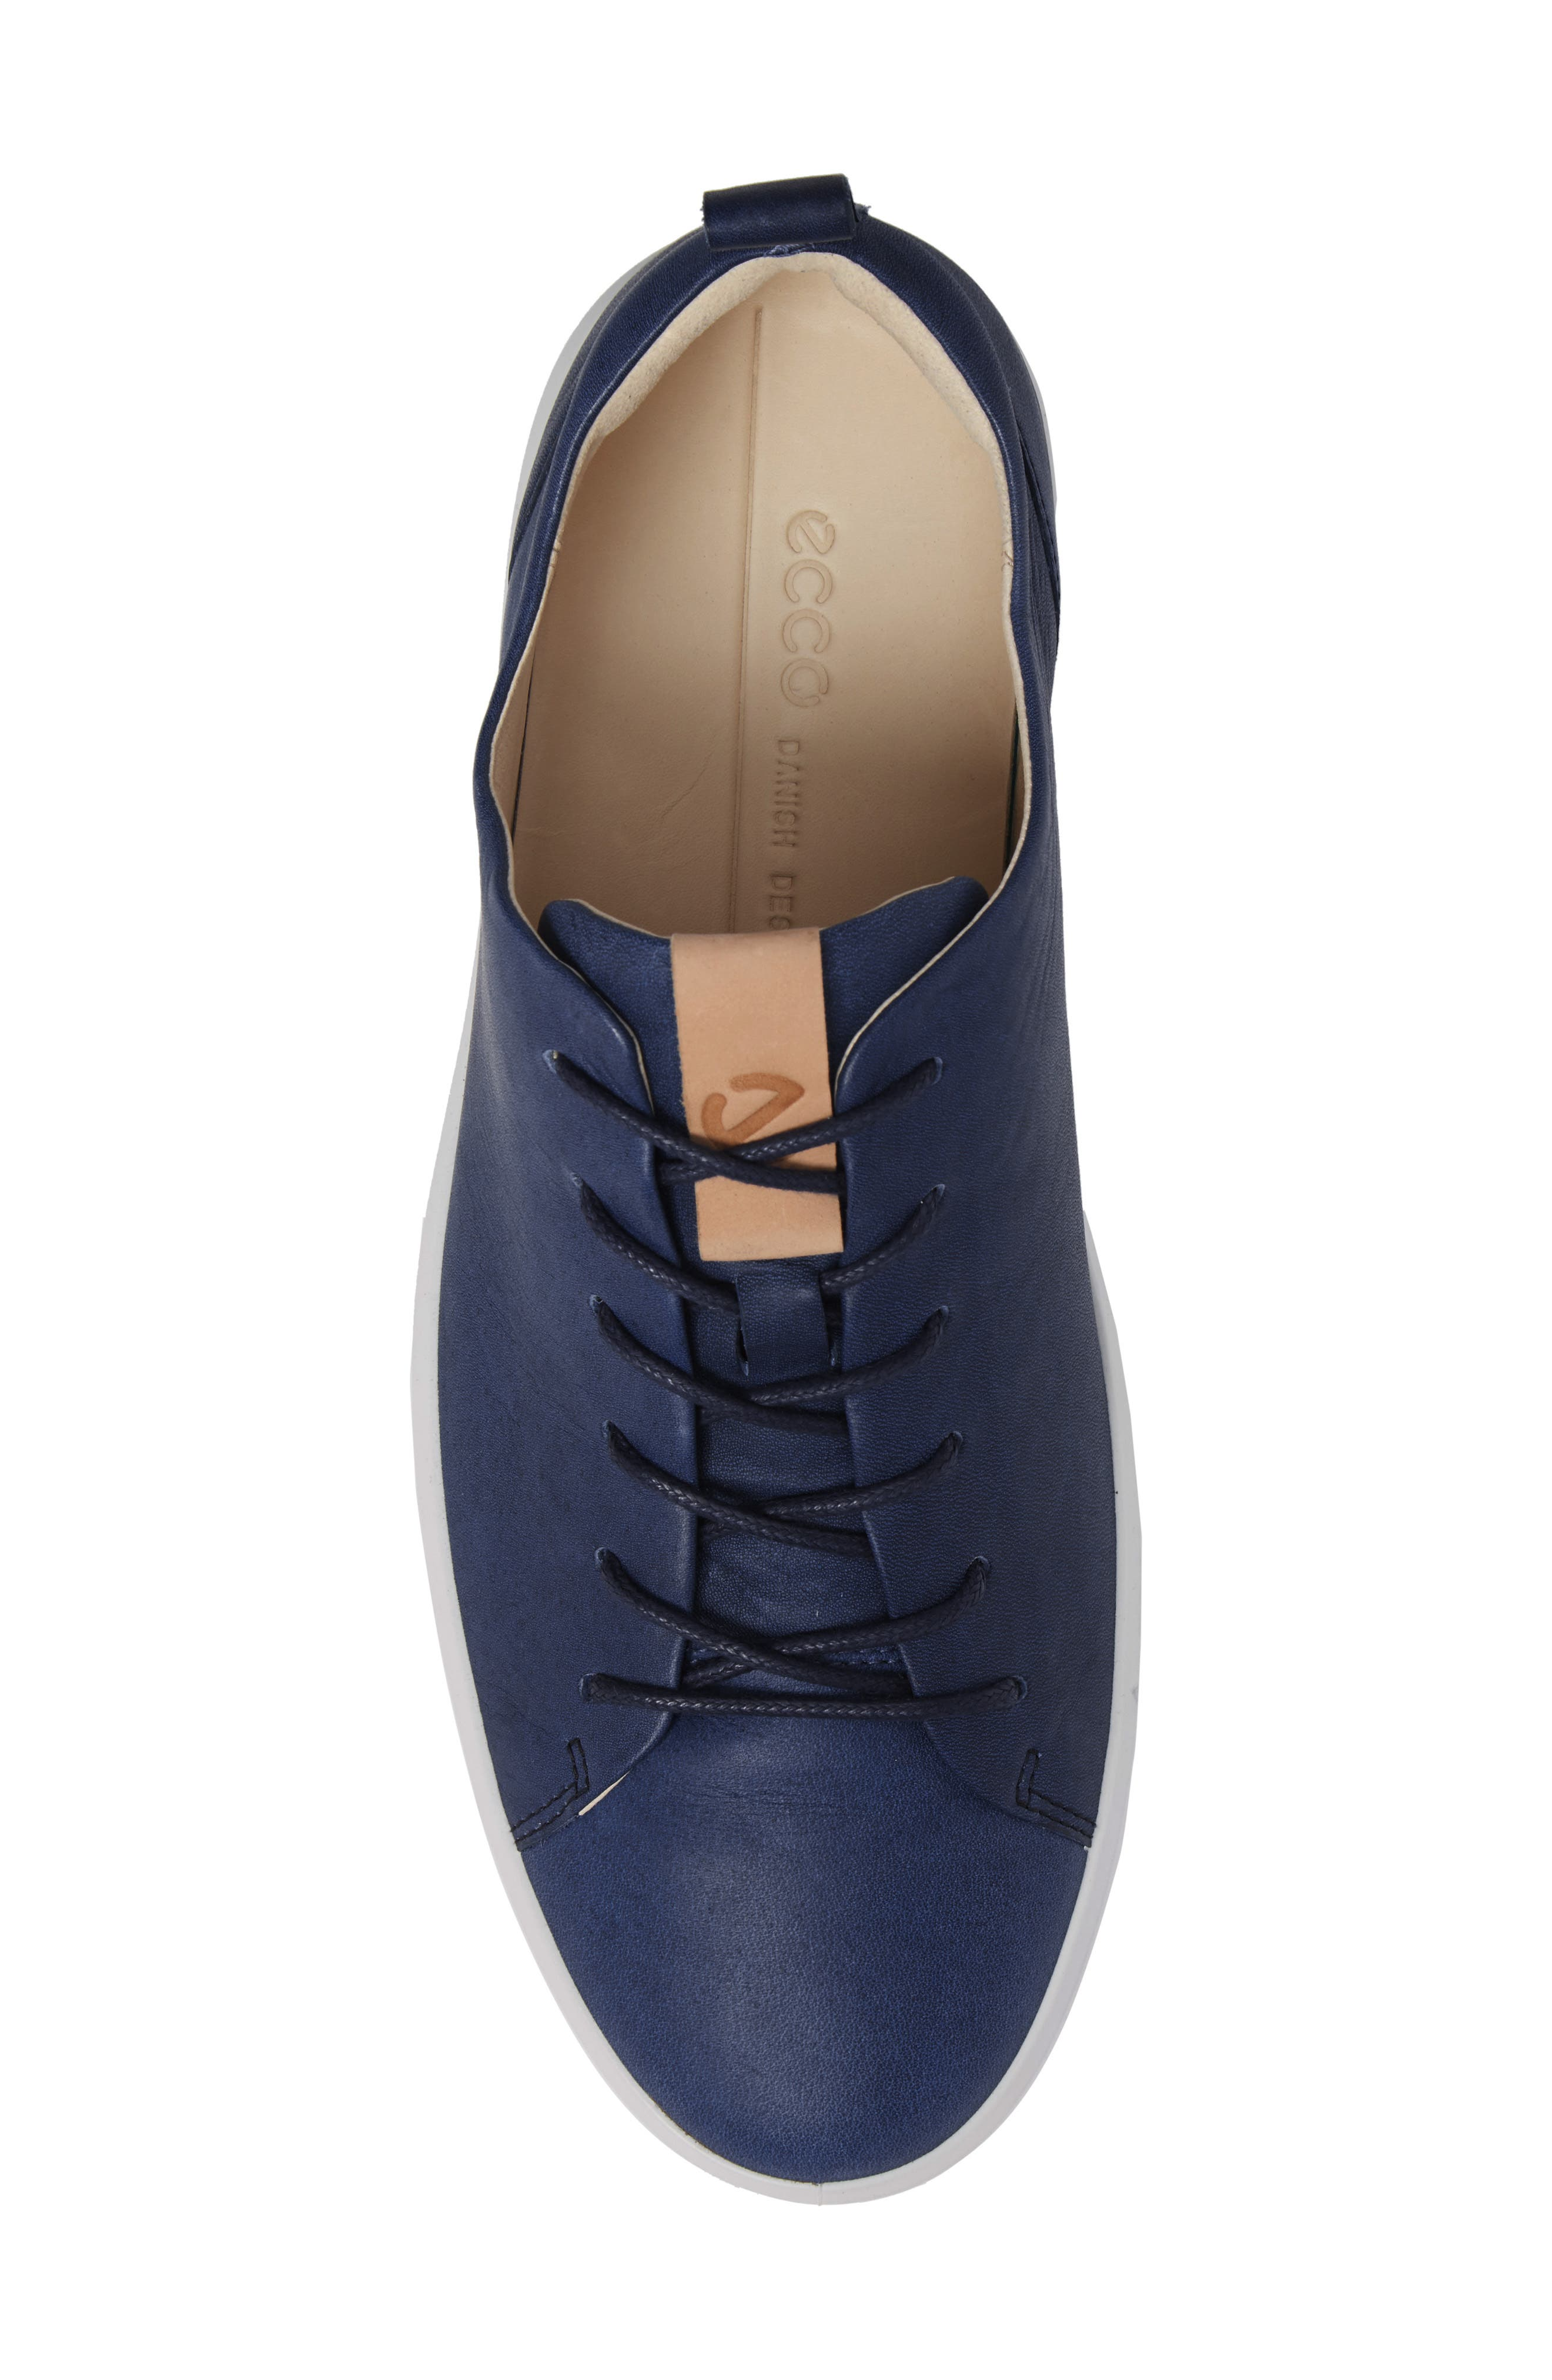 Soft 8 Sneaker,                             Alternate thumbnail 4, color,                             Indigo 7 Leather